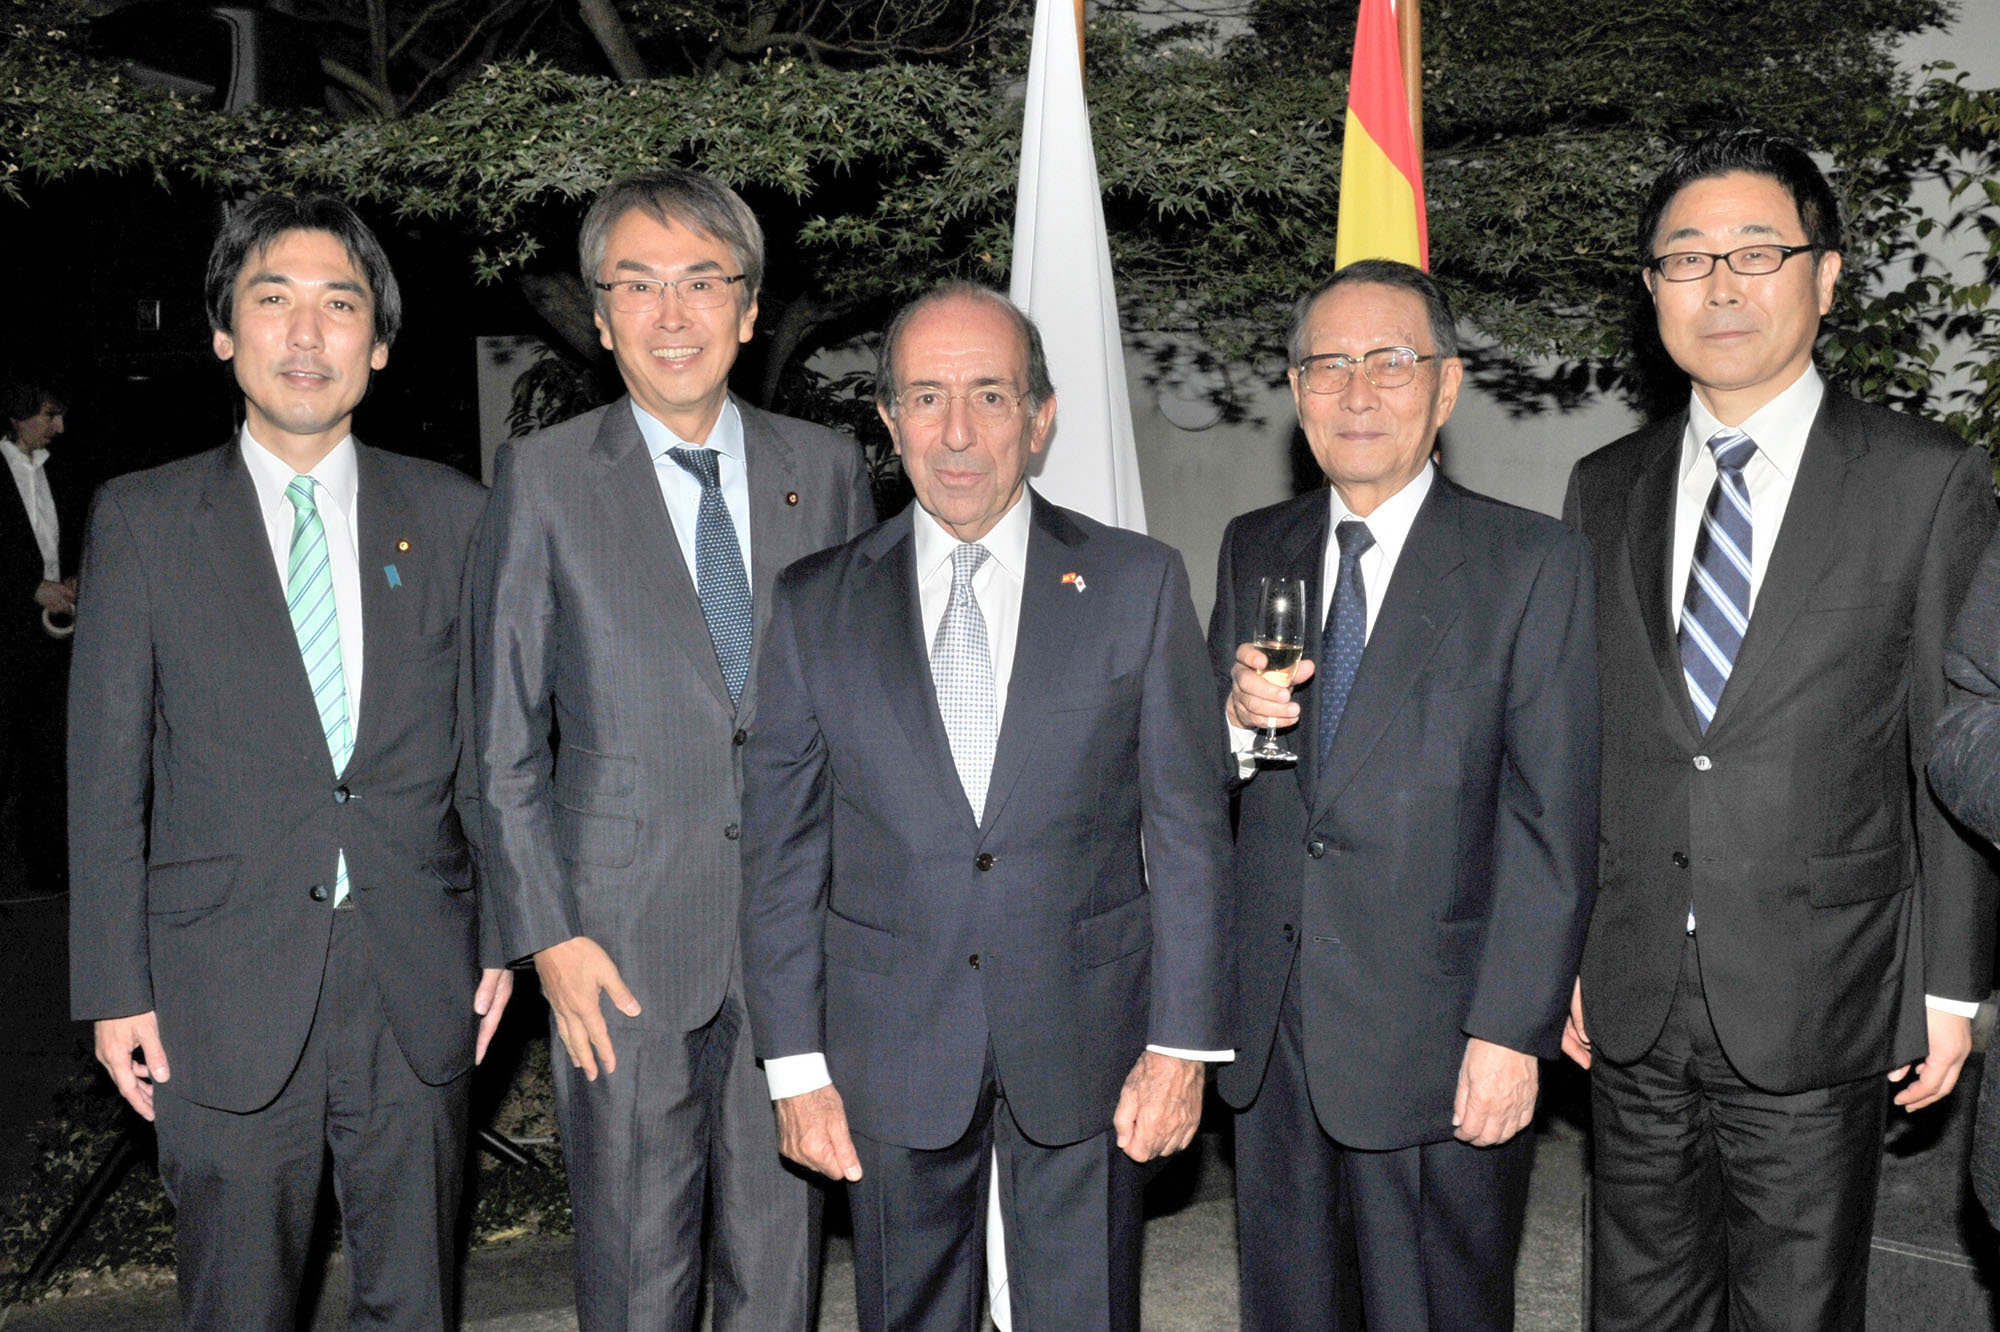 Spain's Ambassador Gonzalo de Benito (center) poses with, from left, former State Minister for Foreign Affairs Minoru Kiuchi;  Nobuteru Ishihara, minister in charge of economic revitalization; former Mitsubishi Cooperation Chairman Mikio Sasaki; and Kazuhiko Koshikawa, senior vice-president of the Japan International Cooperation Agency, during a reception to celebrate Spain's national day at the Spanish embassy in Tokyo on Oct. 13. |  YOSHIAKI MIURA